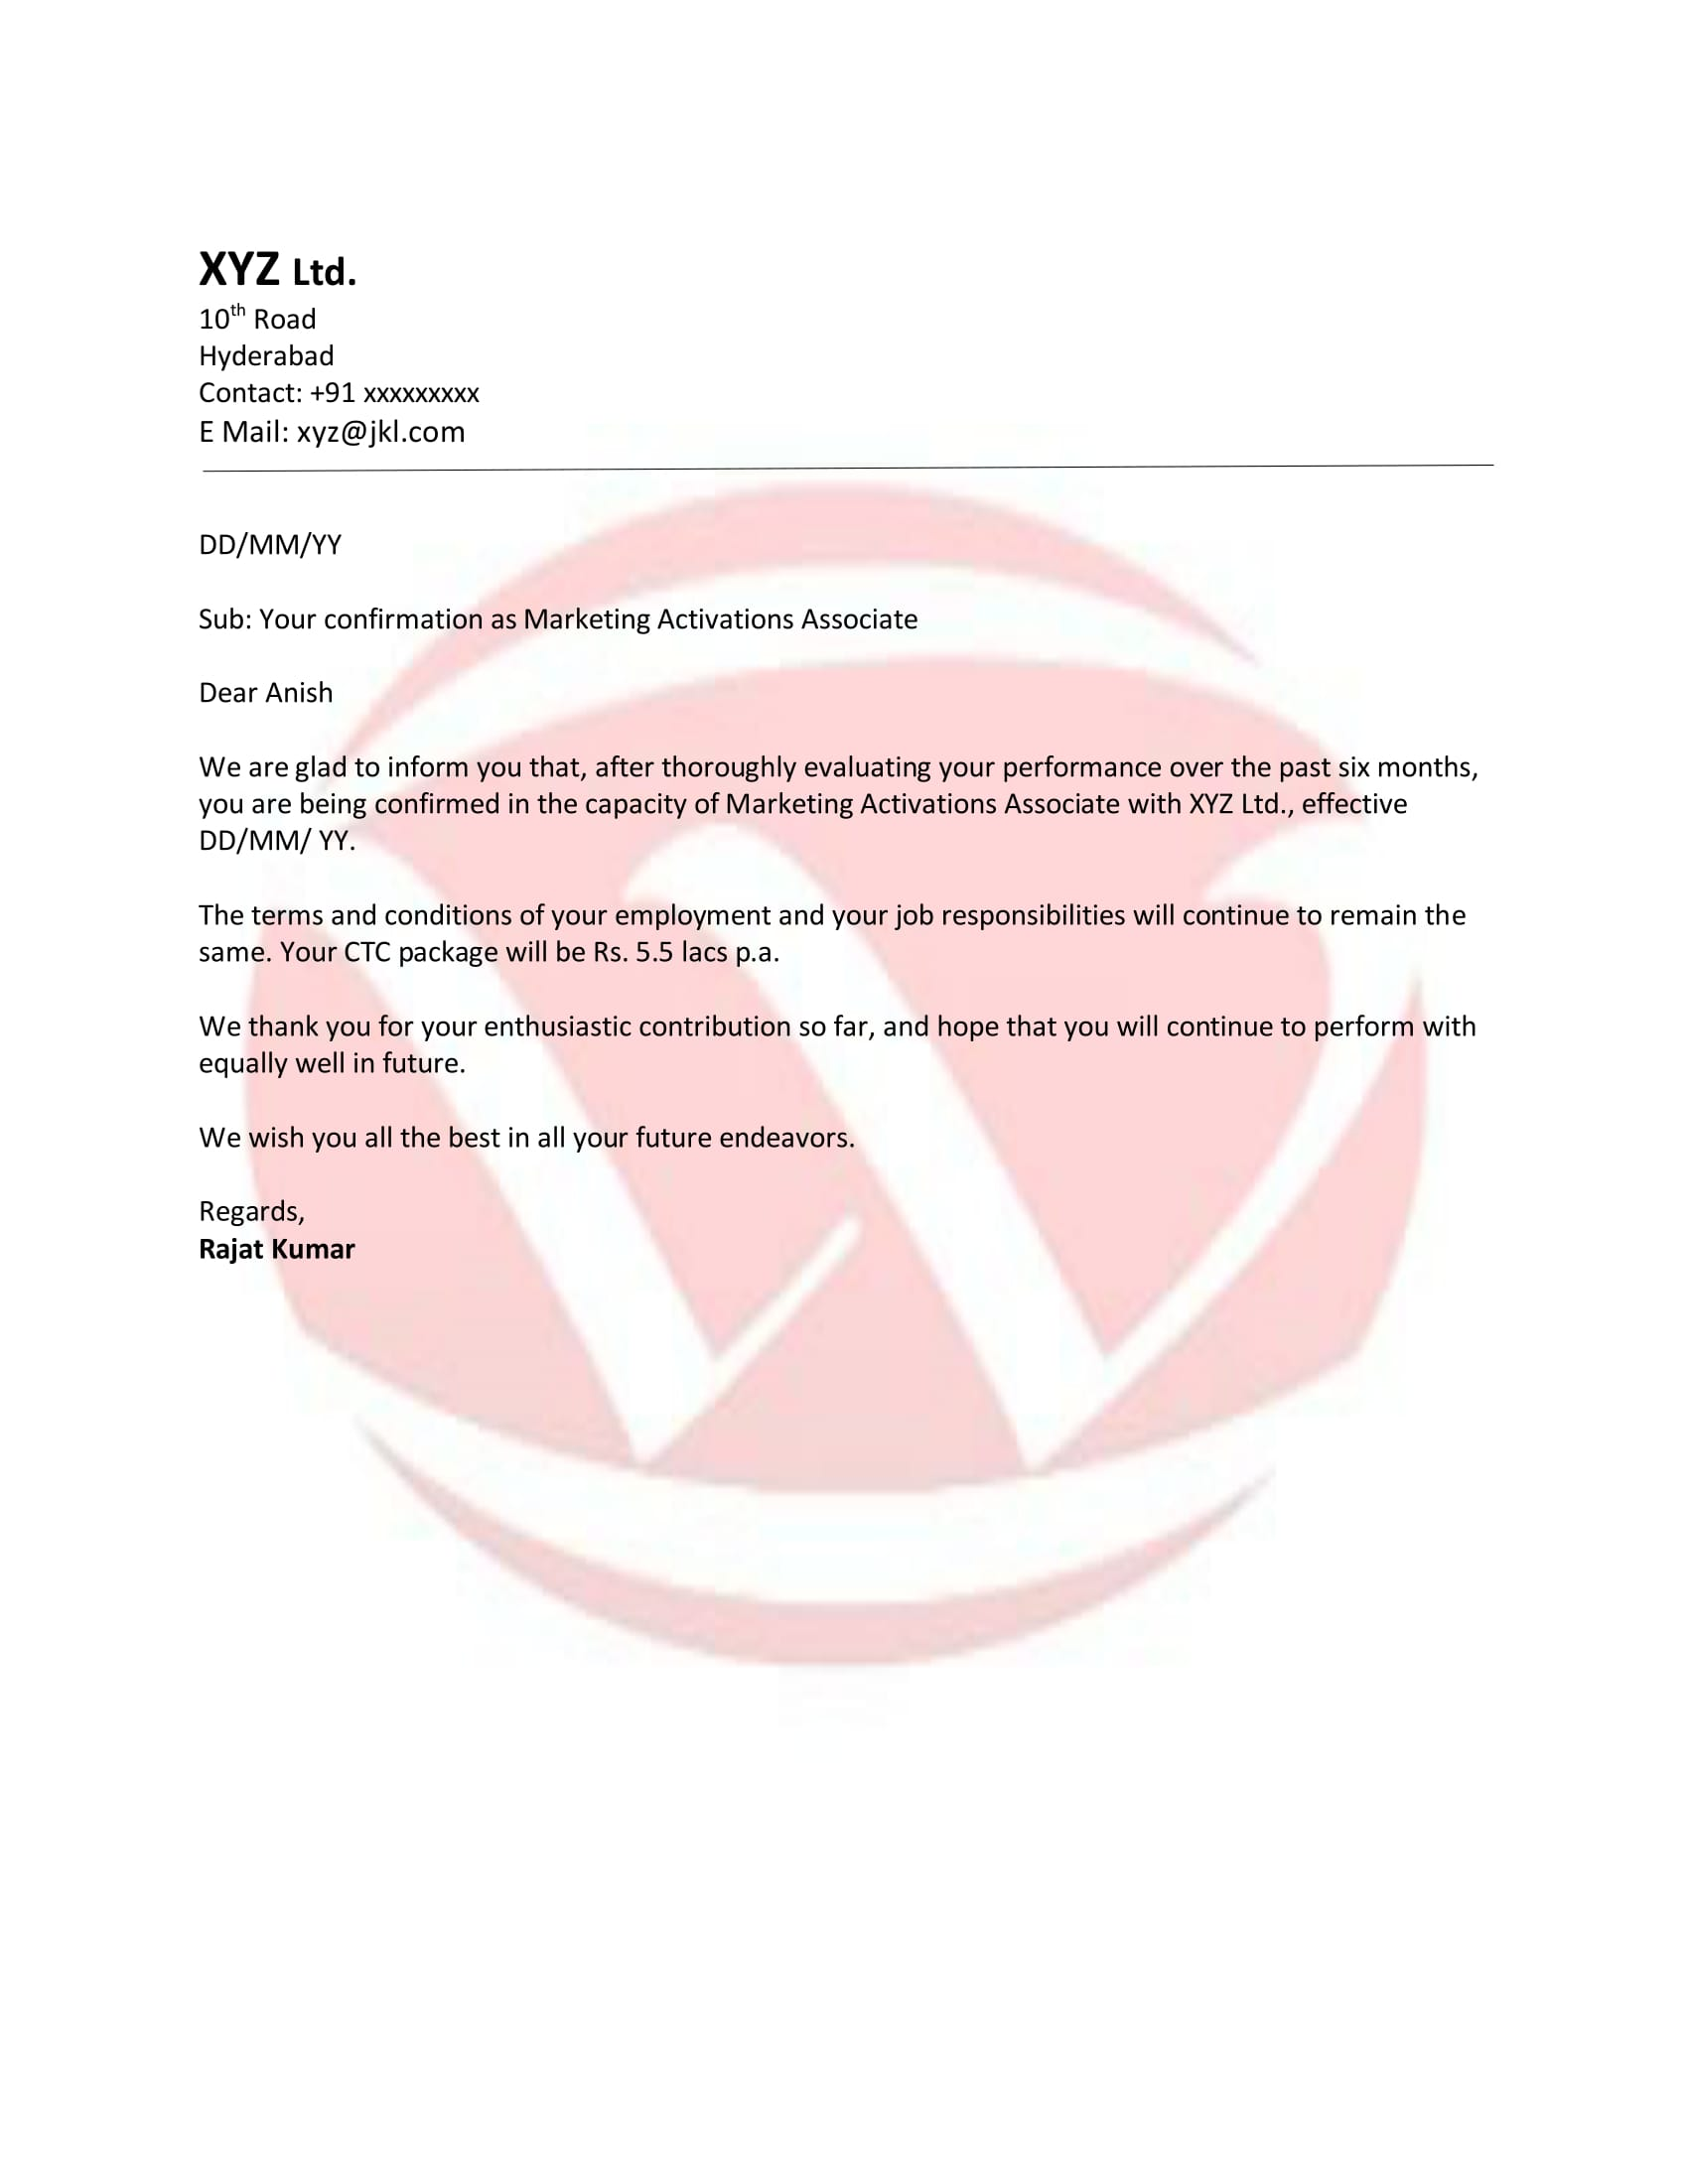 Confirmation Sample Letter  Marketing Letter Format